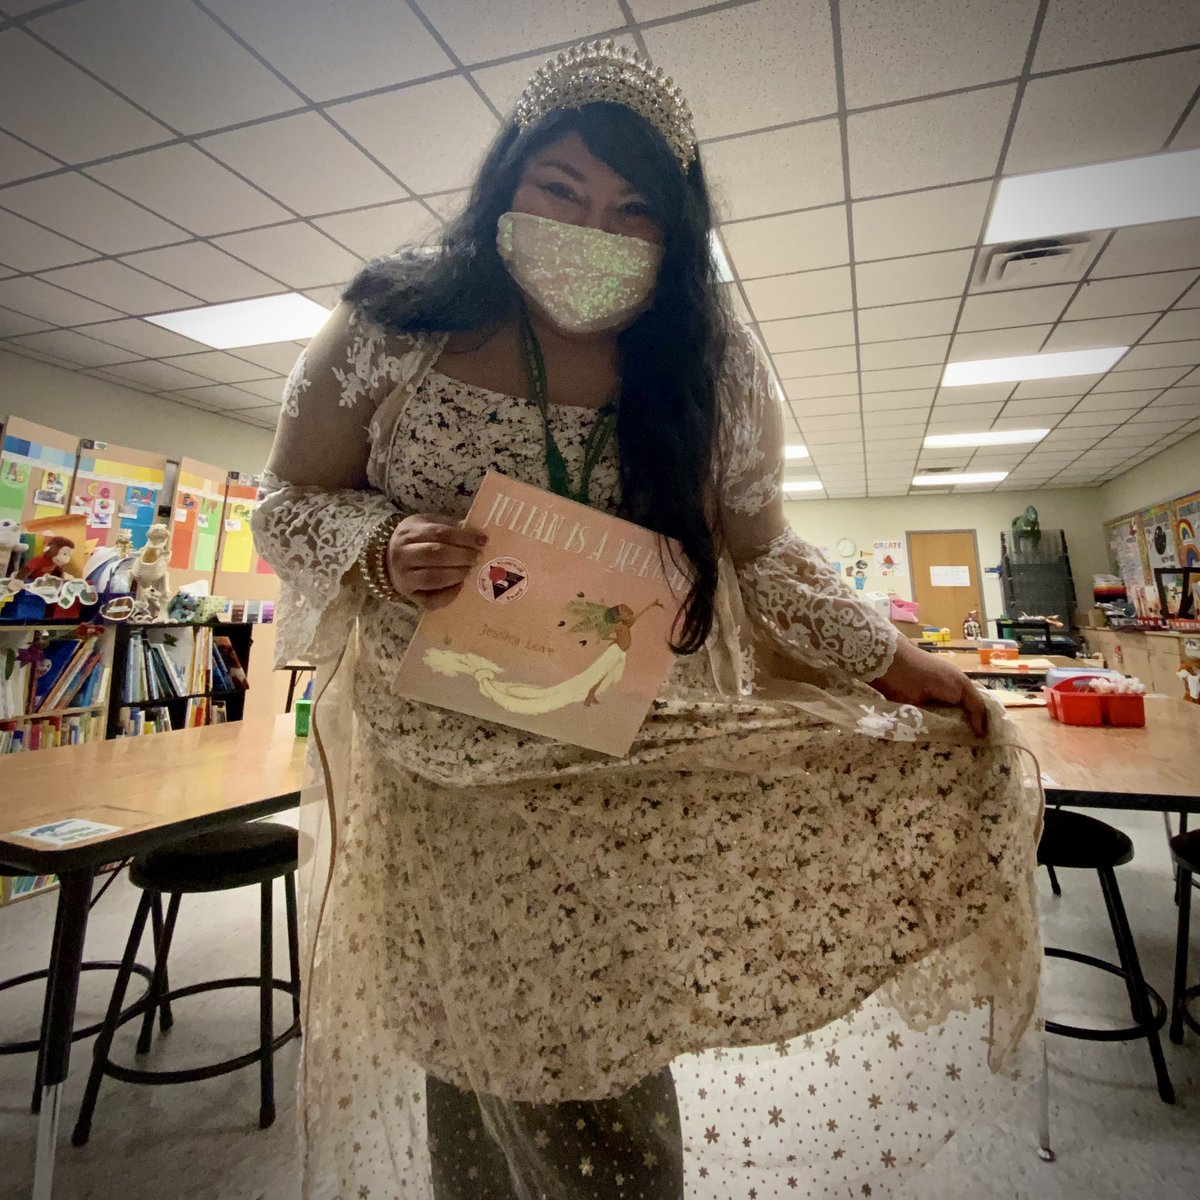 """#ReadAcrossAmericaDay #ReadAcrossAmericaWeek """"celebrate that reading is for sharing. Bring a book to read to a friend. Dress as the character in your fave book."""" Today I am channeling Julián @Candlewick can't wait to share this story with my #artists #aldineart #artteacher"""